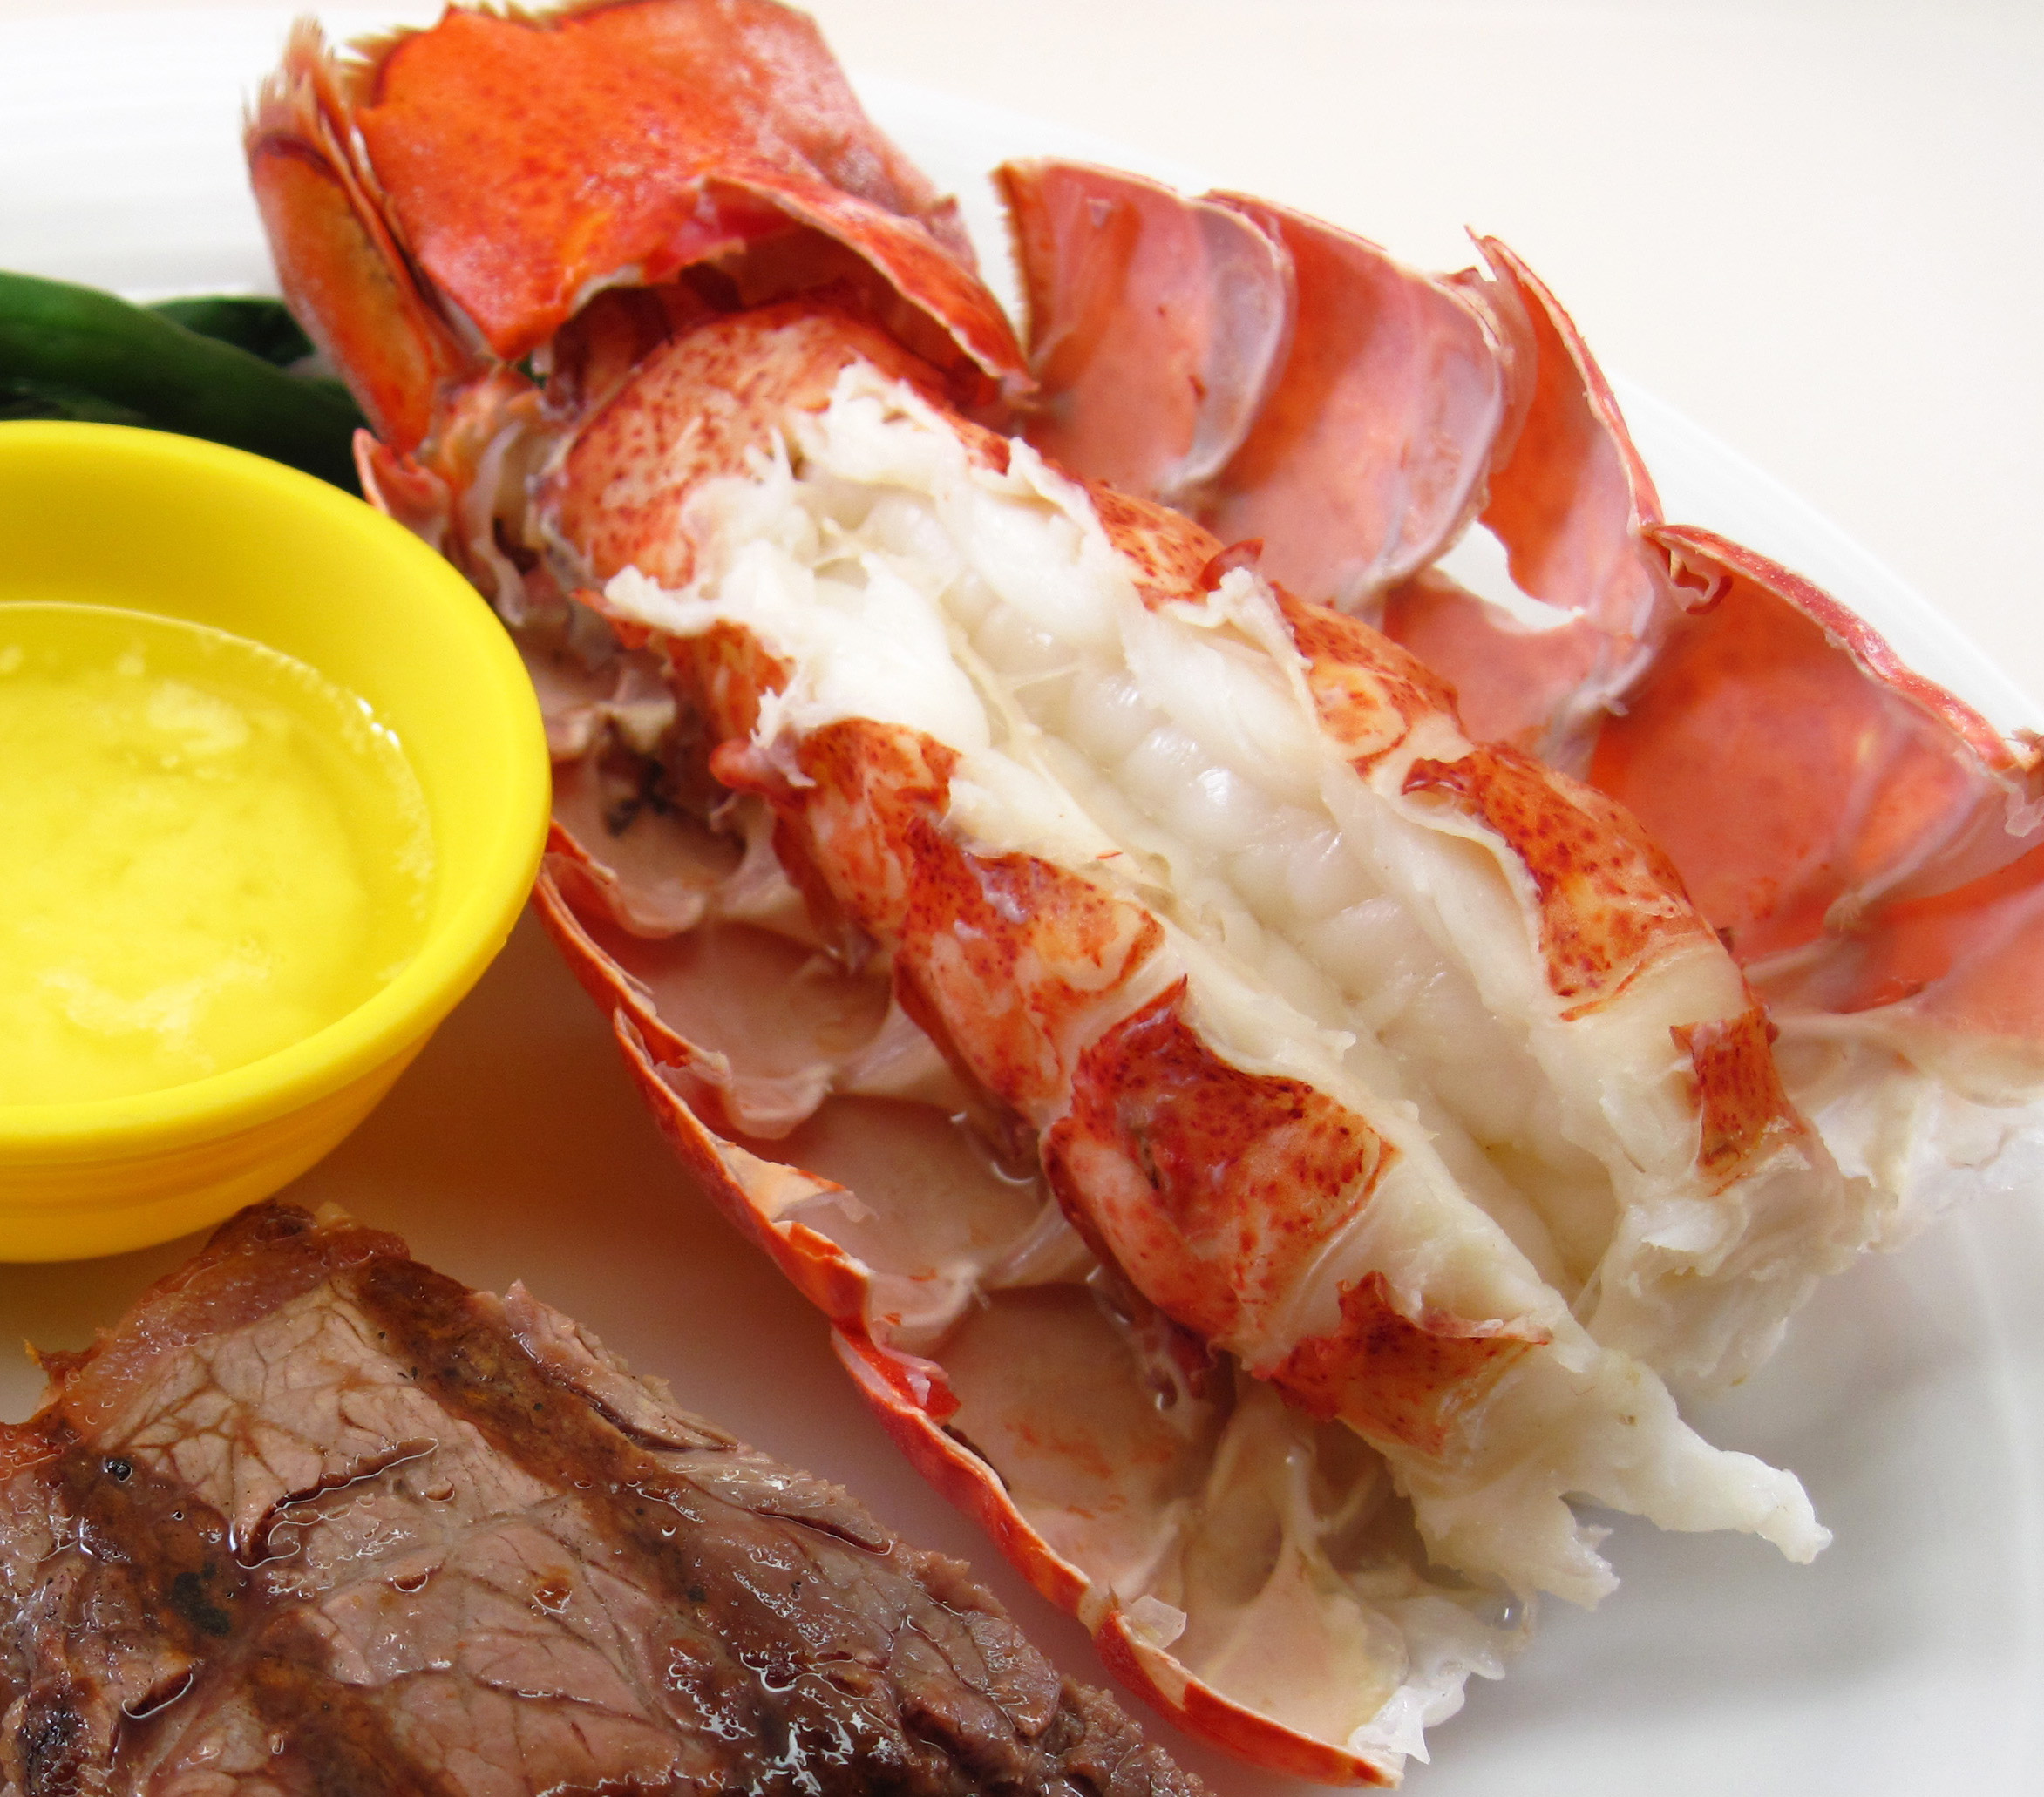 Boiled Lobster Tails | In the kitchen with Kath